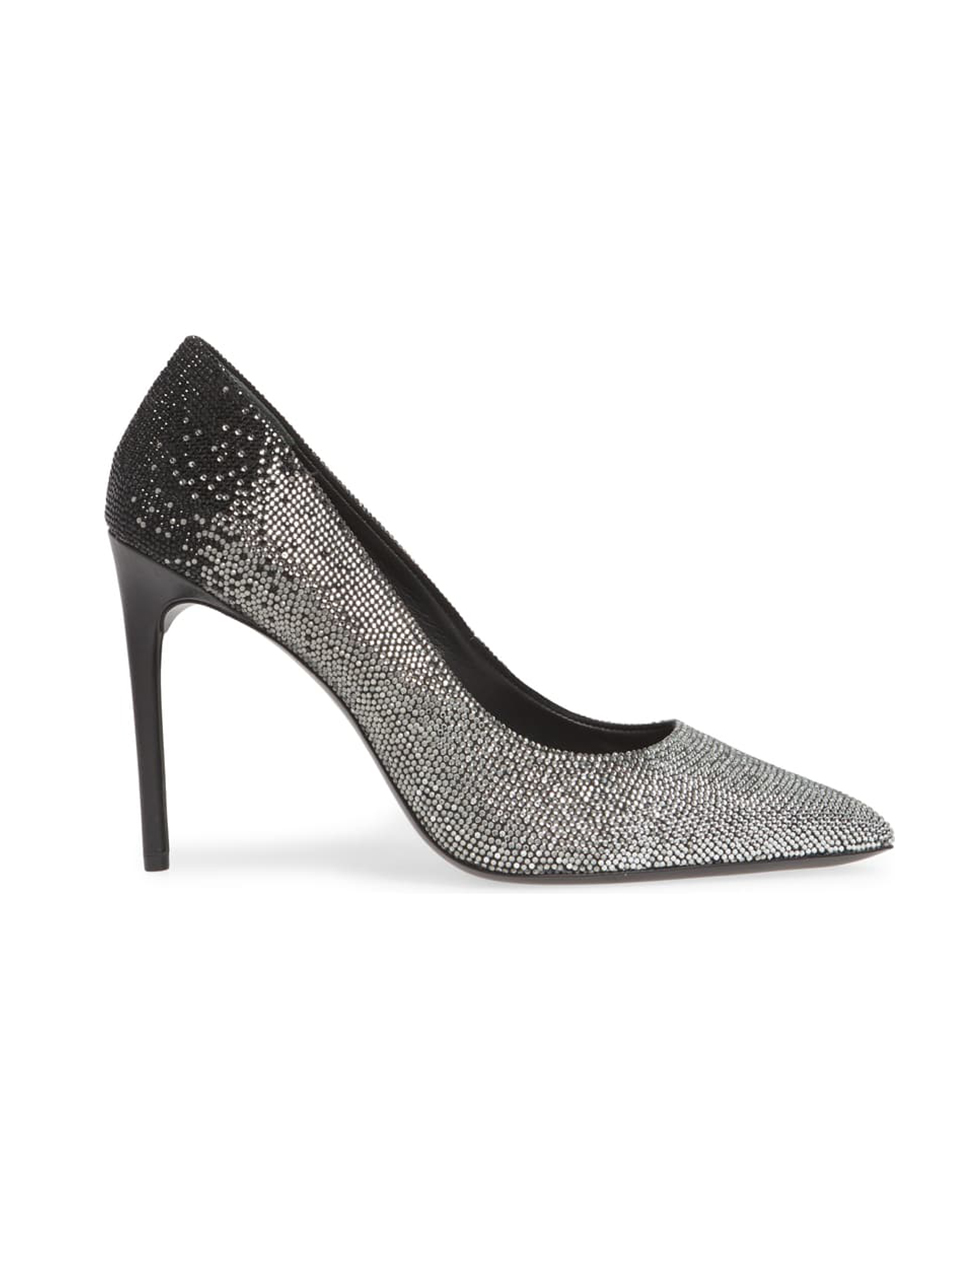 ALICE + OLIVIA Calliey Pump In Black/Silver